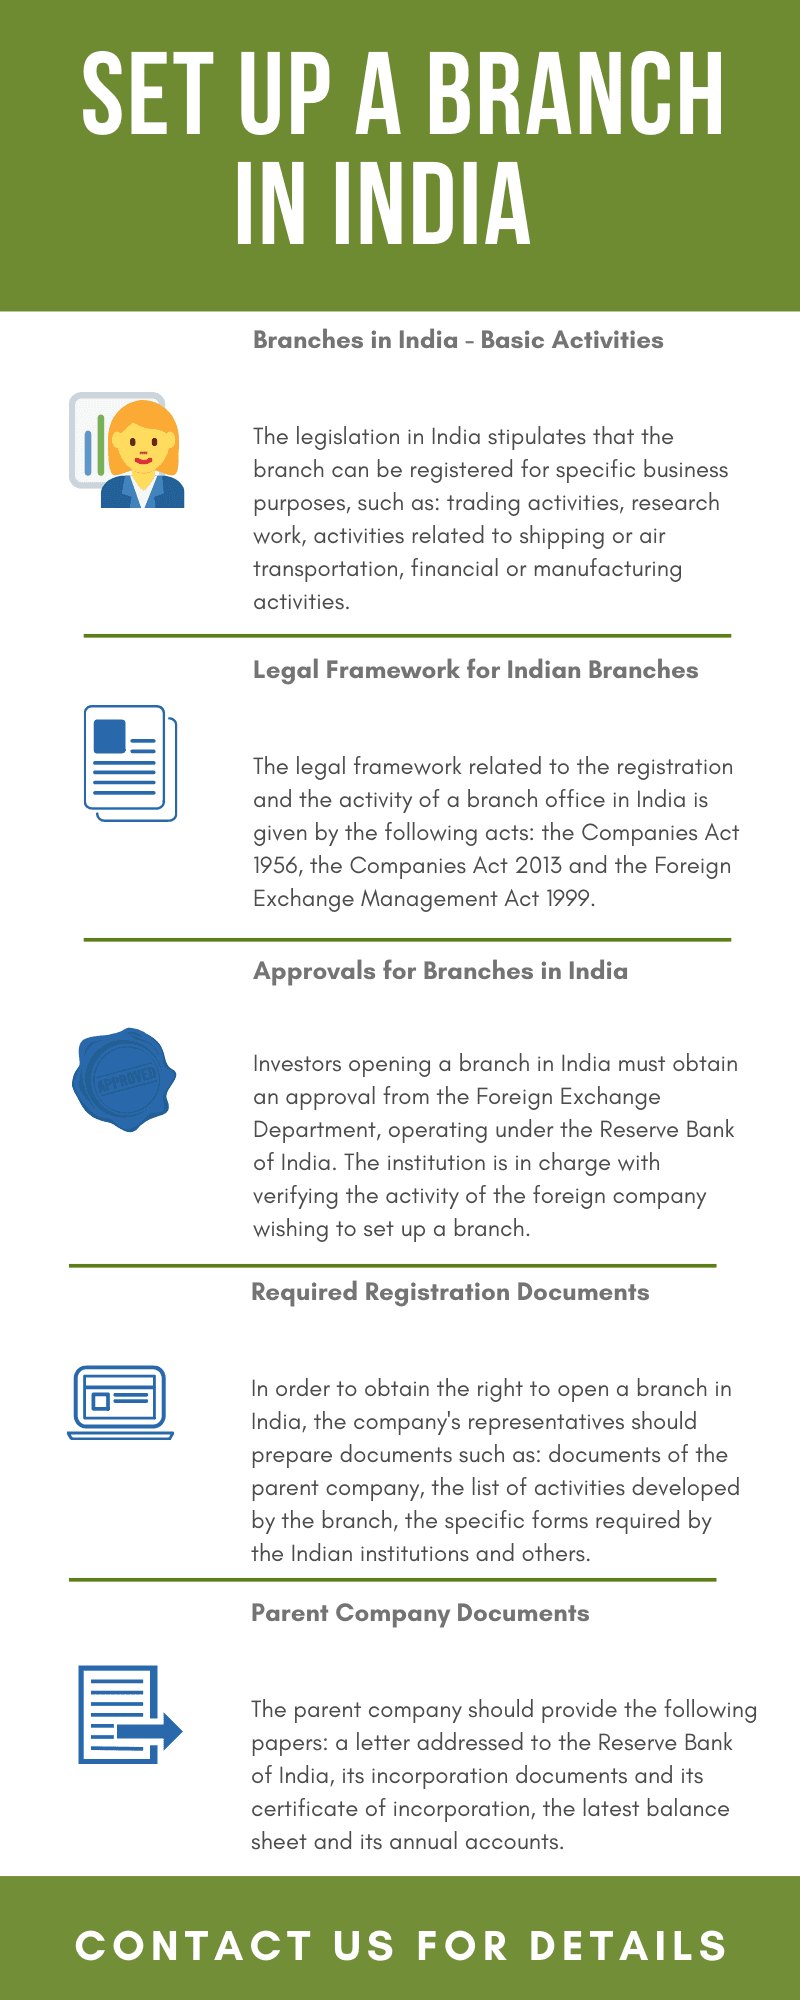 Set Up a Branch in India